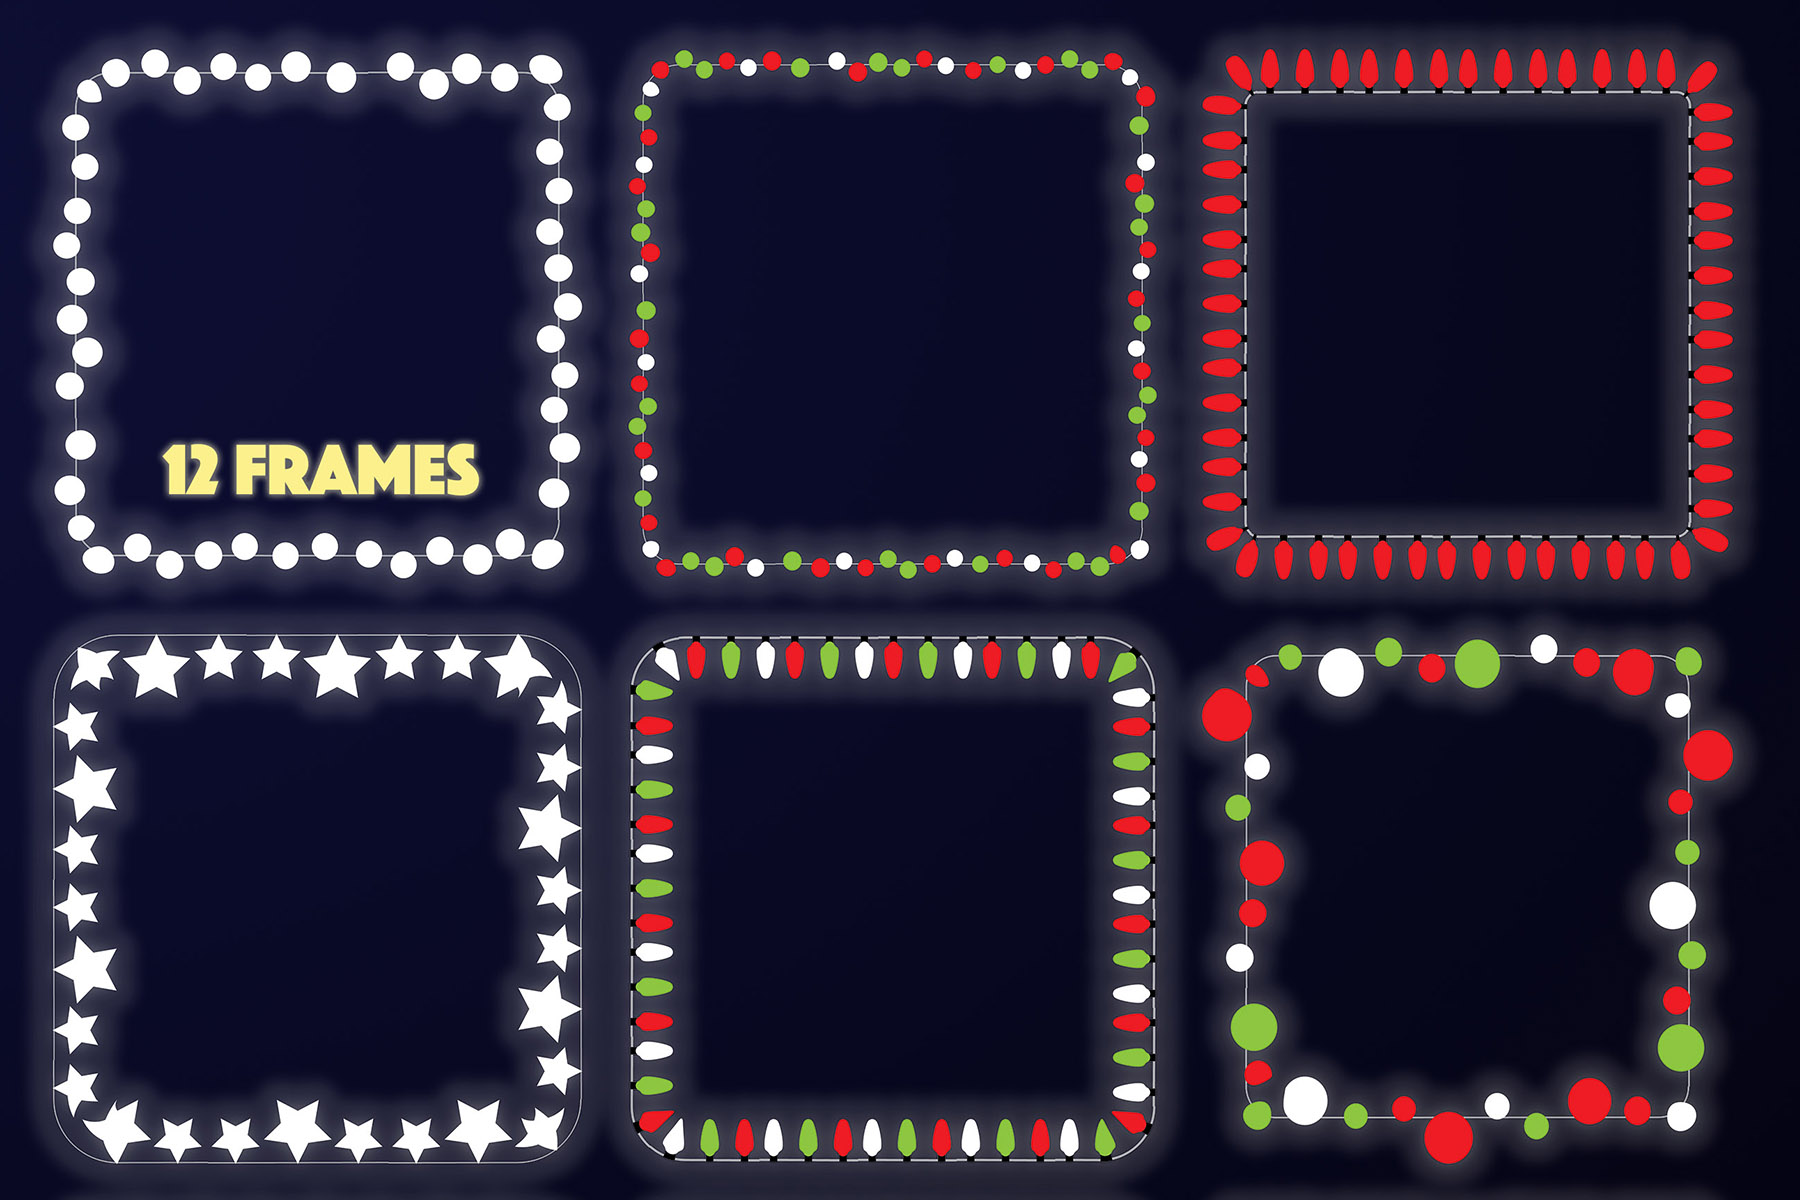 String Lights - Borders and Frames Illustrations example image 6